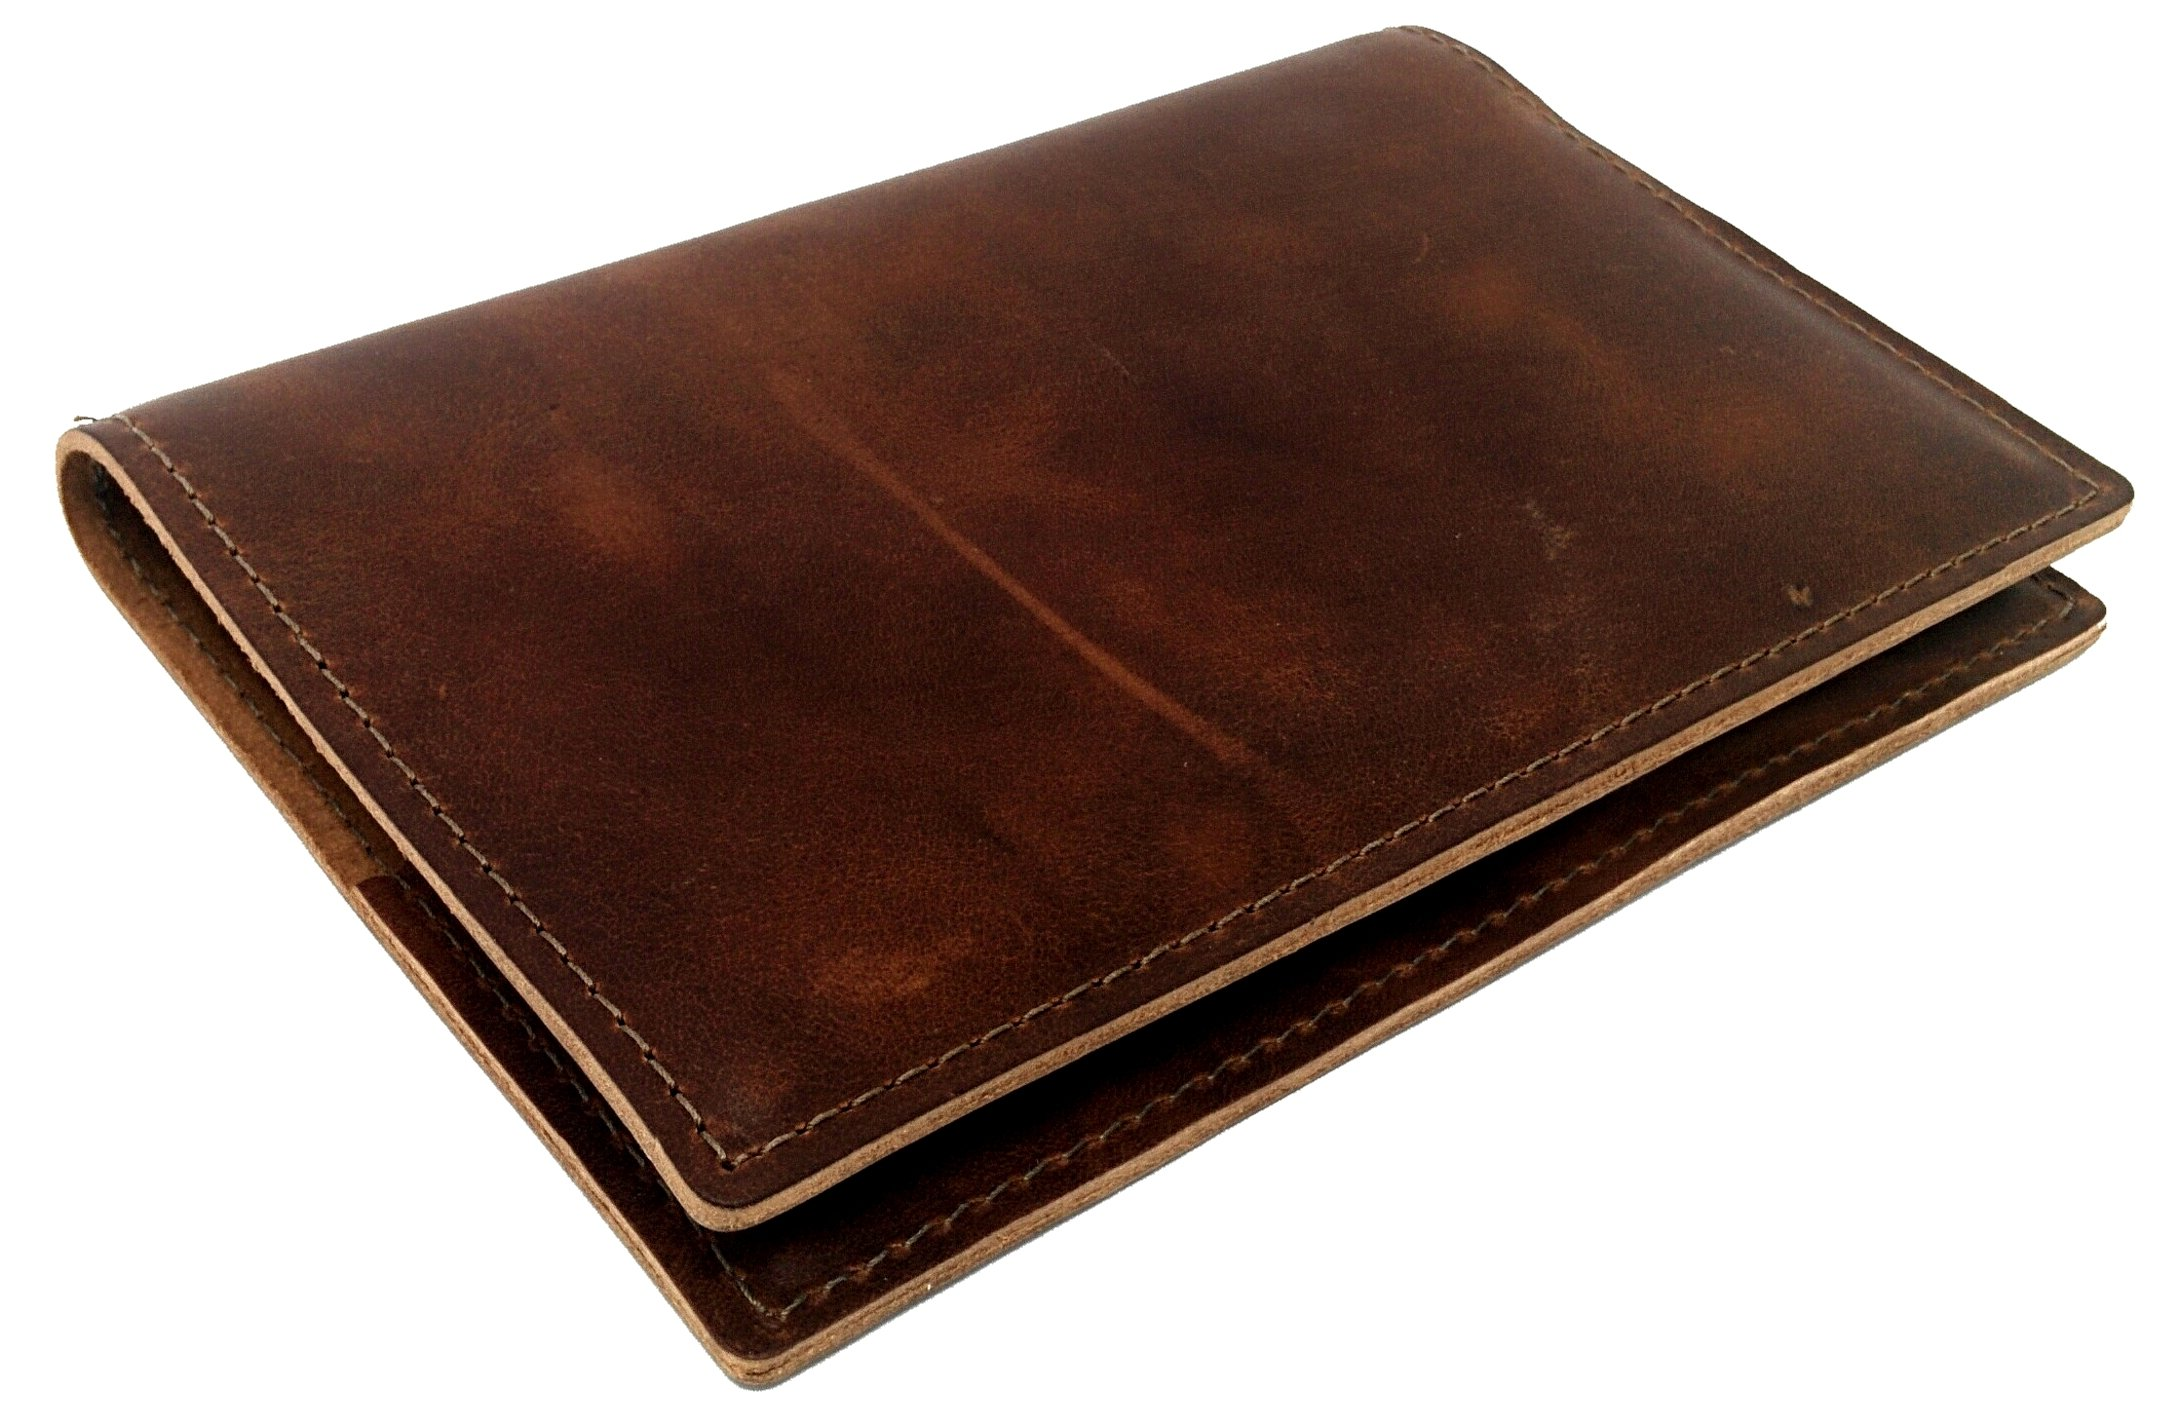 Thick Top Grain American Cowhide Leather Cover by DIY Indispensables for Included US Military Log Record Book 5-1/4 x 8 Inch NSN 7530-00-222-3521 Refillable Made in USA (Saddle Rustic) by DIY Indispensables